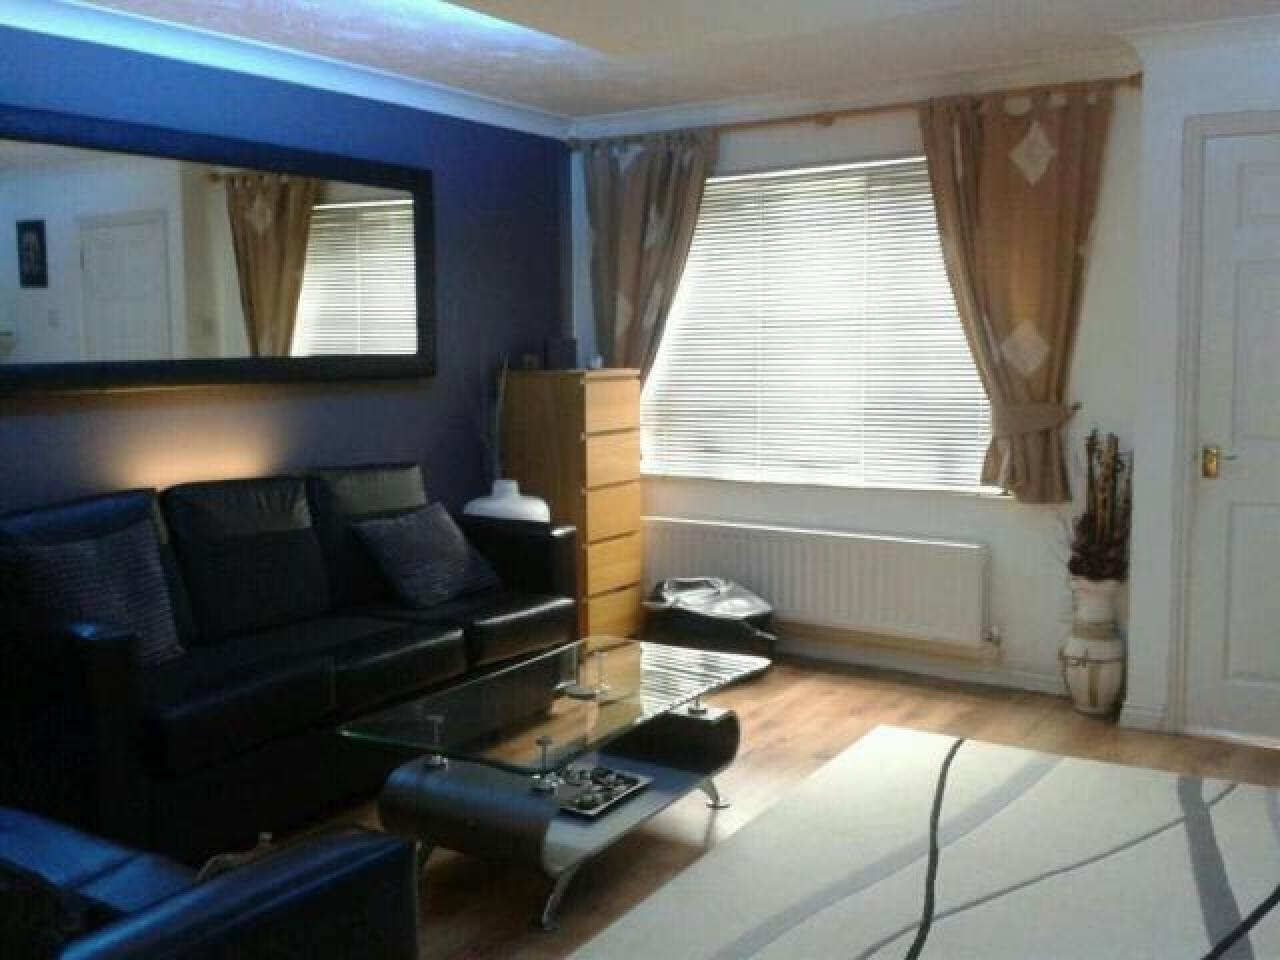 3 Bed House, Keel Close Barking, IG1 1 650 £ — Available Now - 3